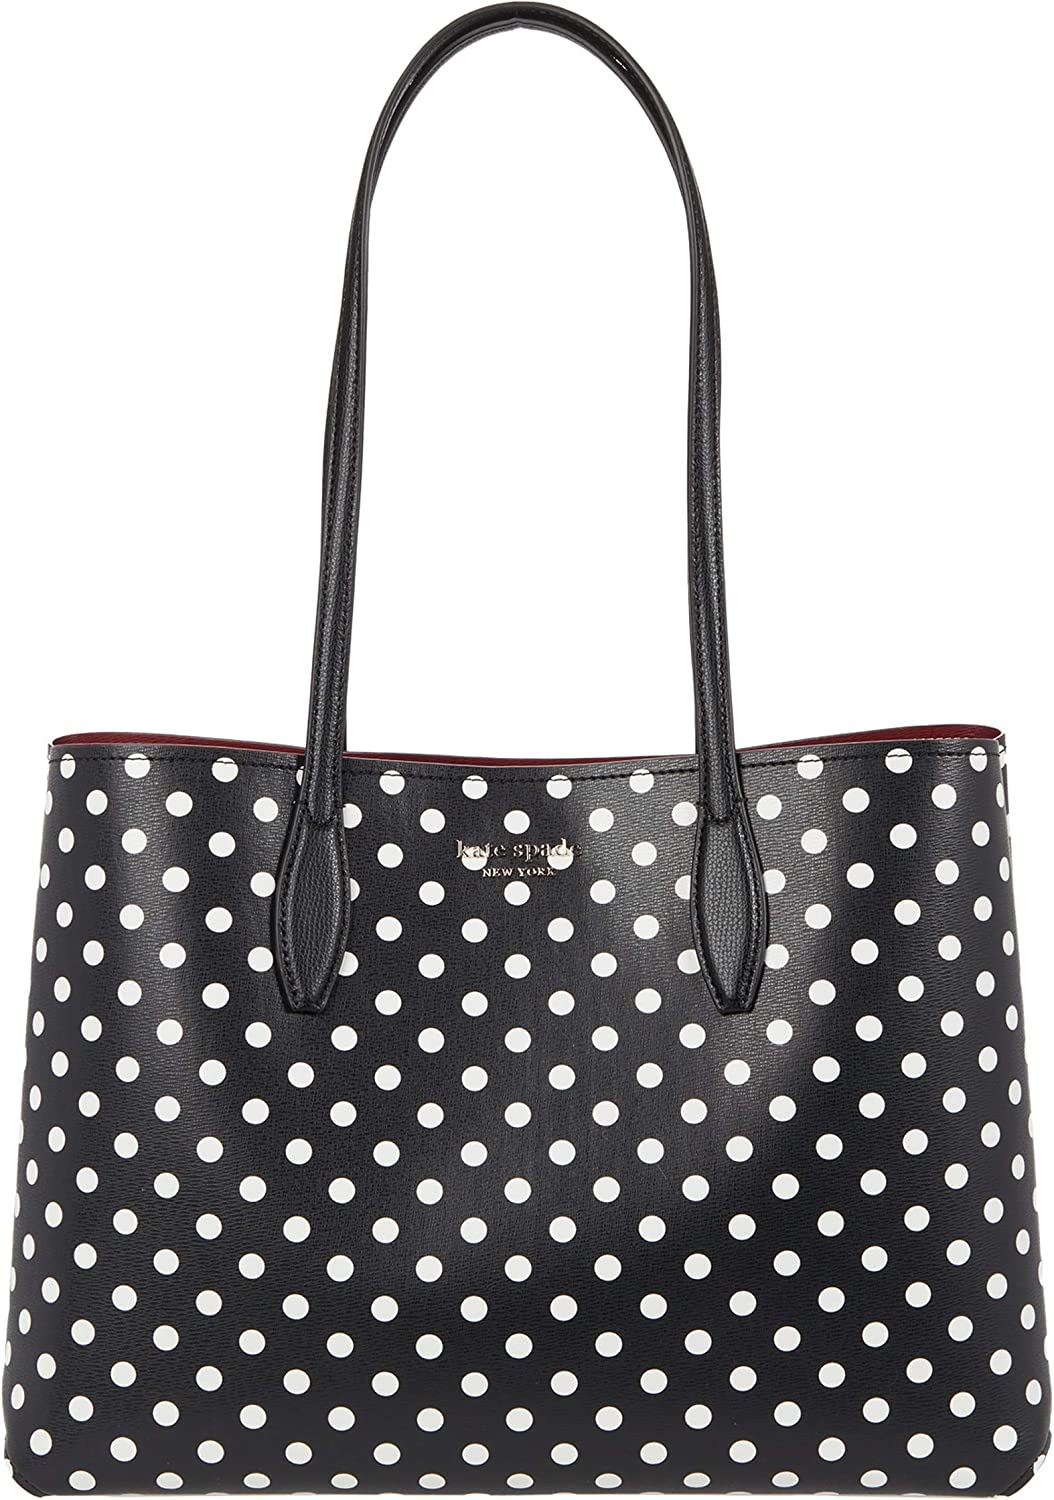 Kate Spade New York All Day Lady Dot Large Tote